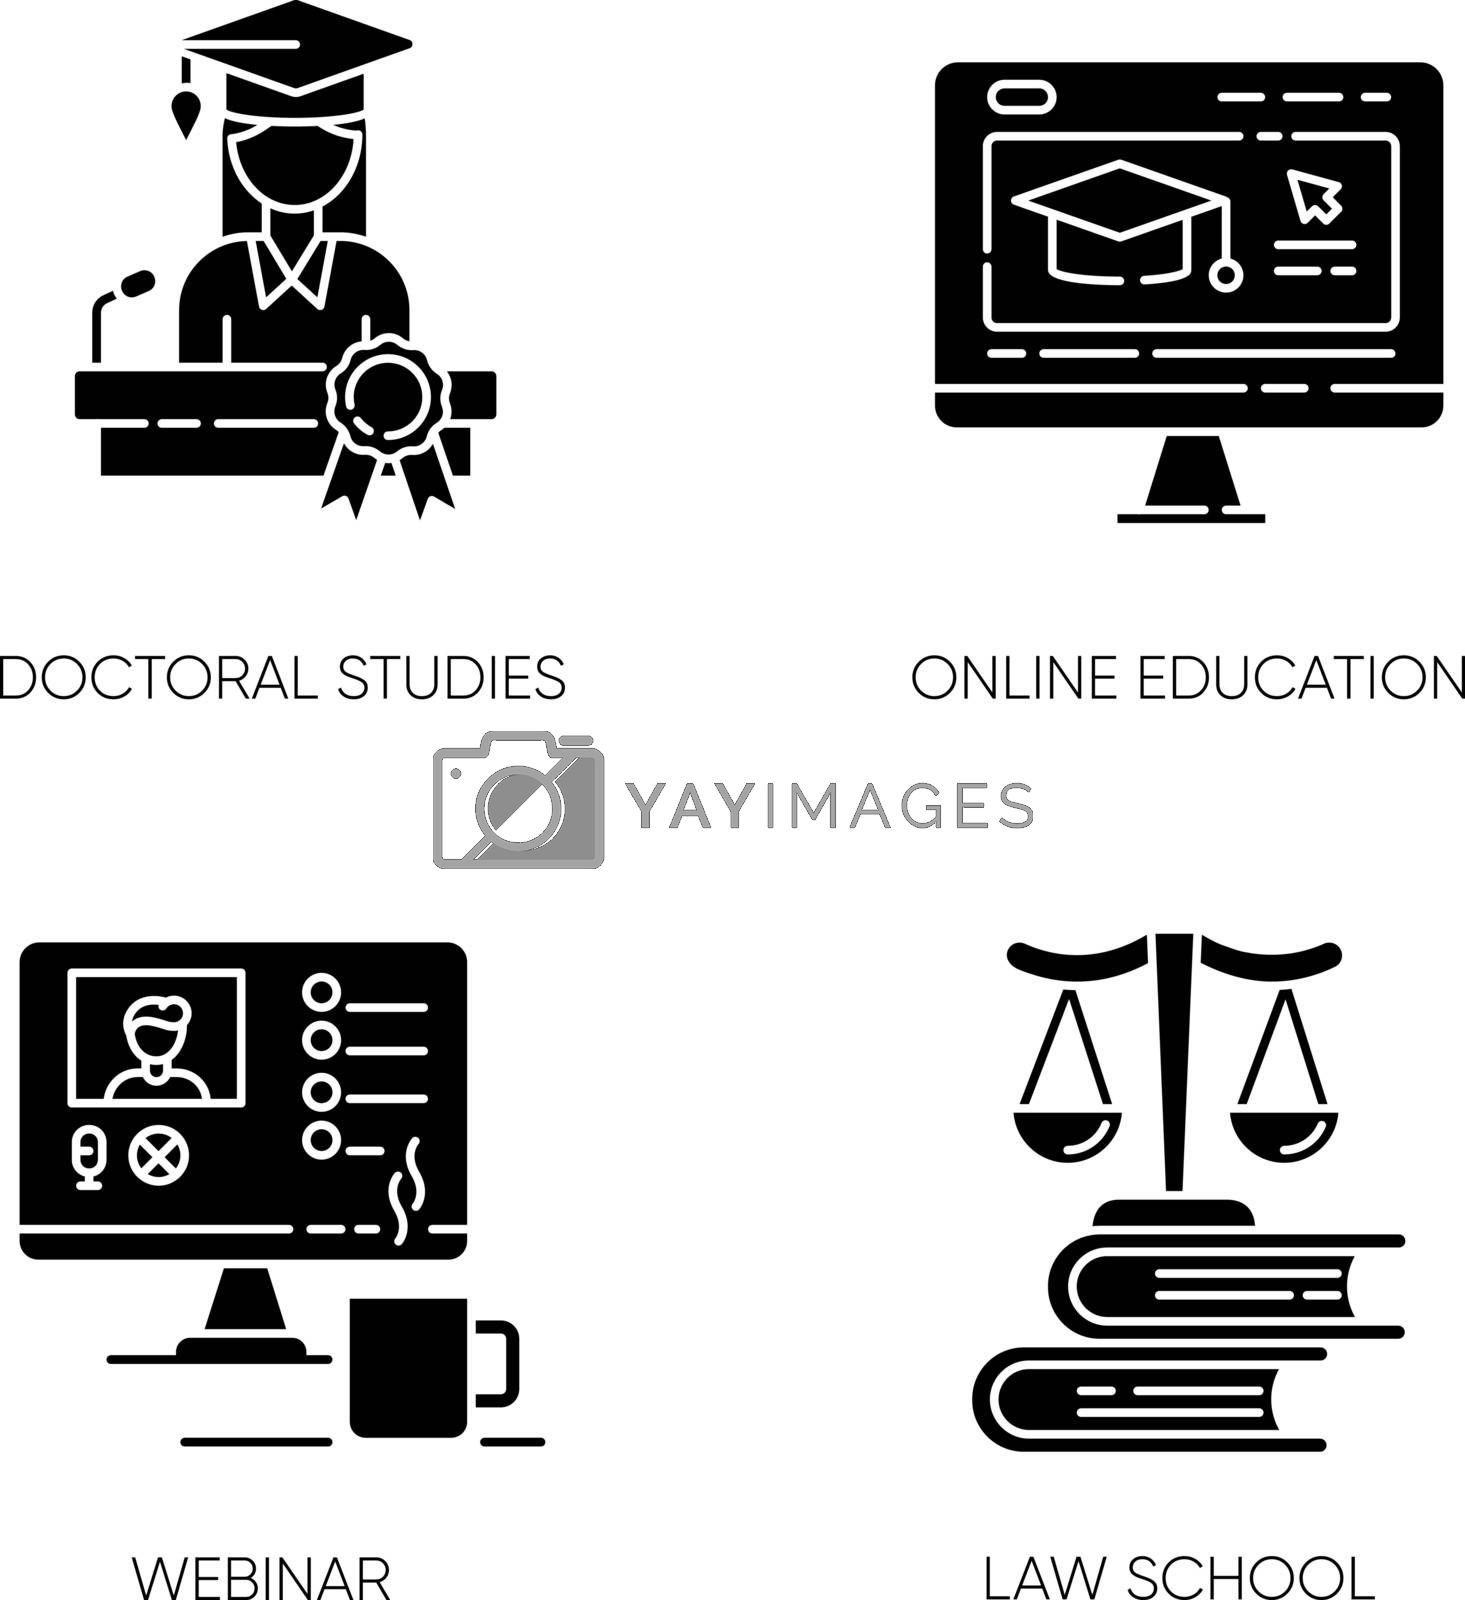 Modern higher education black glyph icons set on white space. Doctoral studies, law school, online training courses and webinars silhouette symbols. Diploma obtaining. Vector isolated illustrations